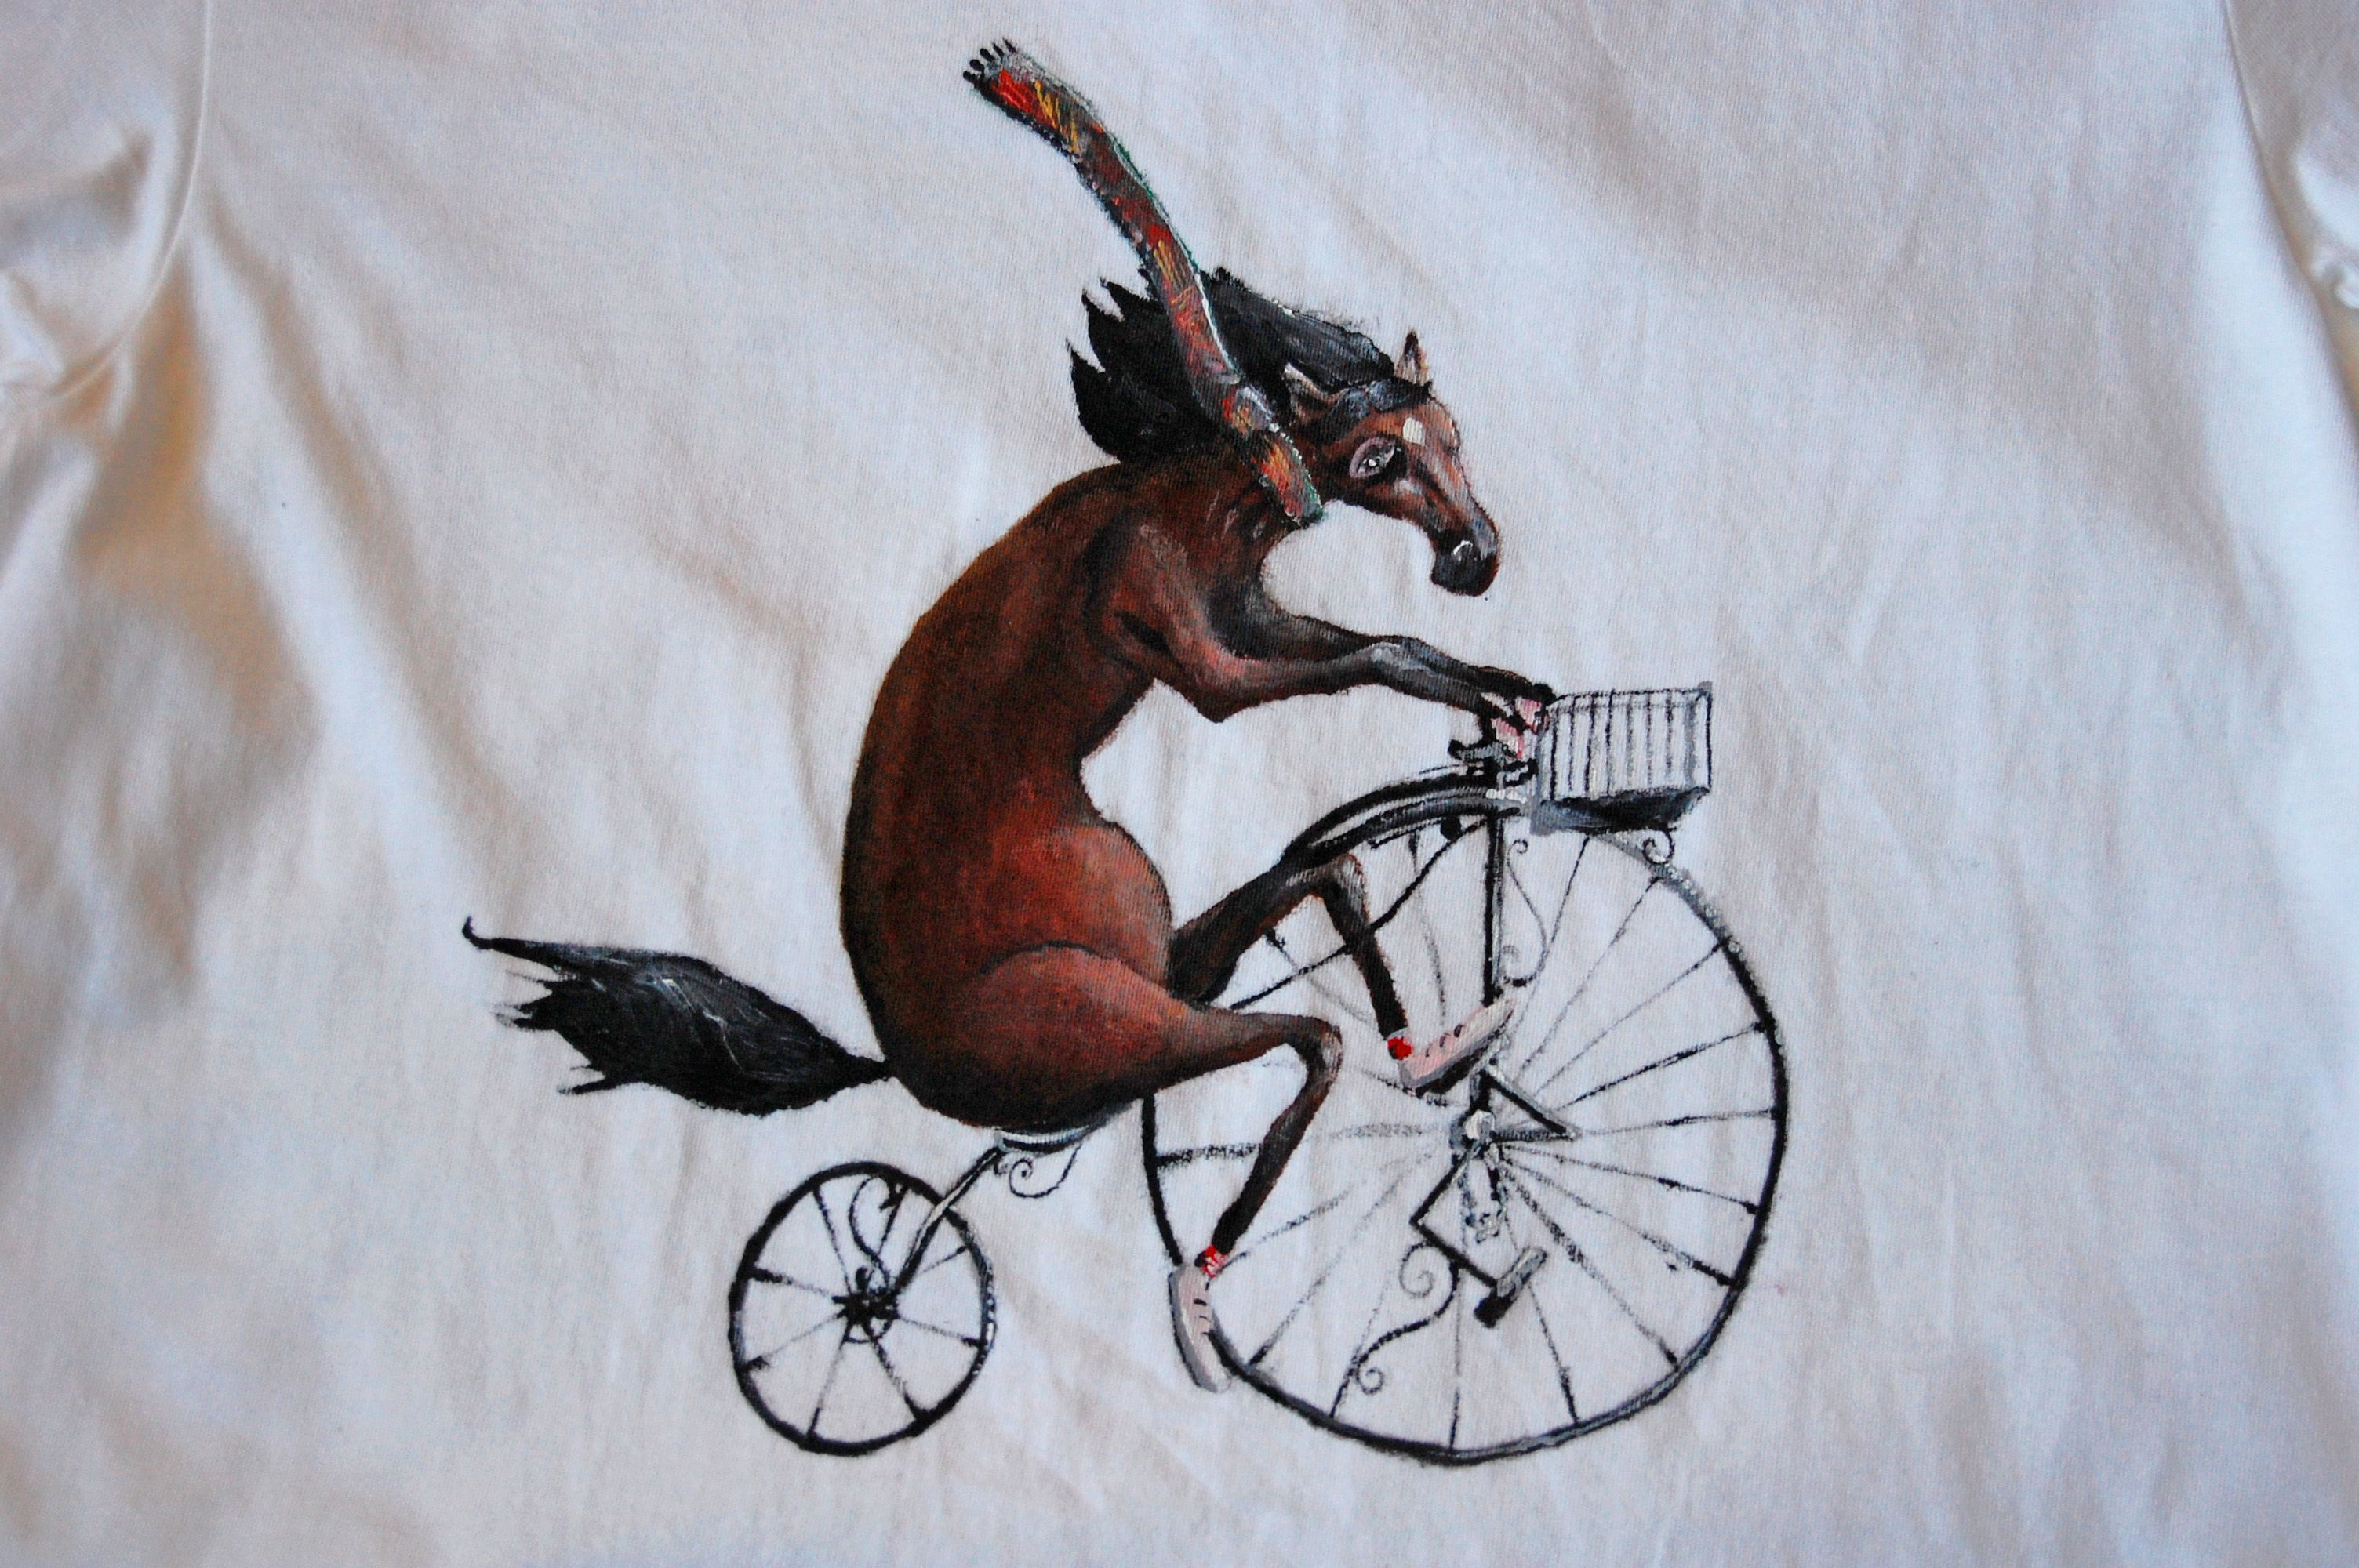 #handpainted #tshirts by @ipaintstuffontshirts. A horse who fancies himself as quite the thespian is cycling through Cambridge